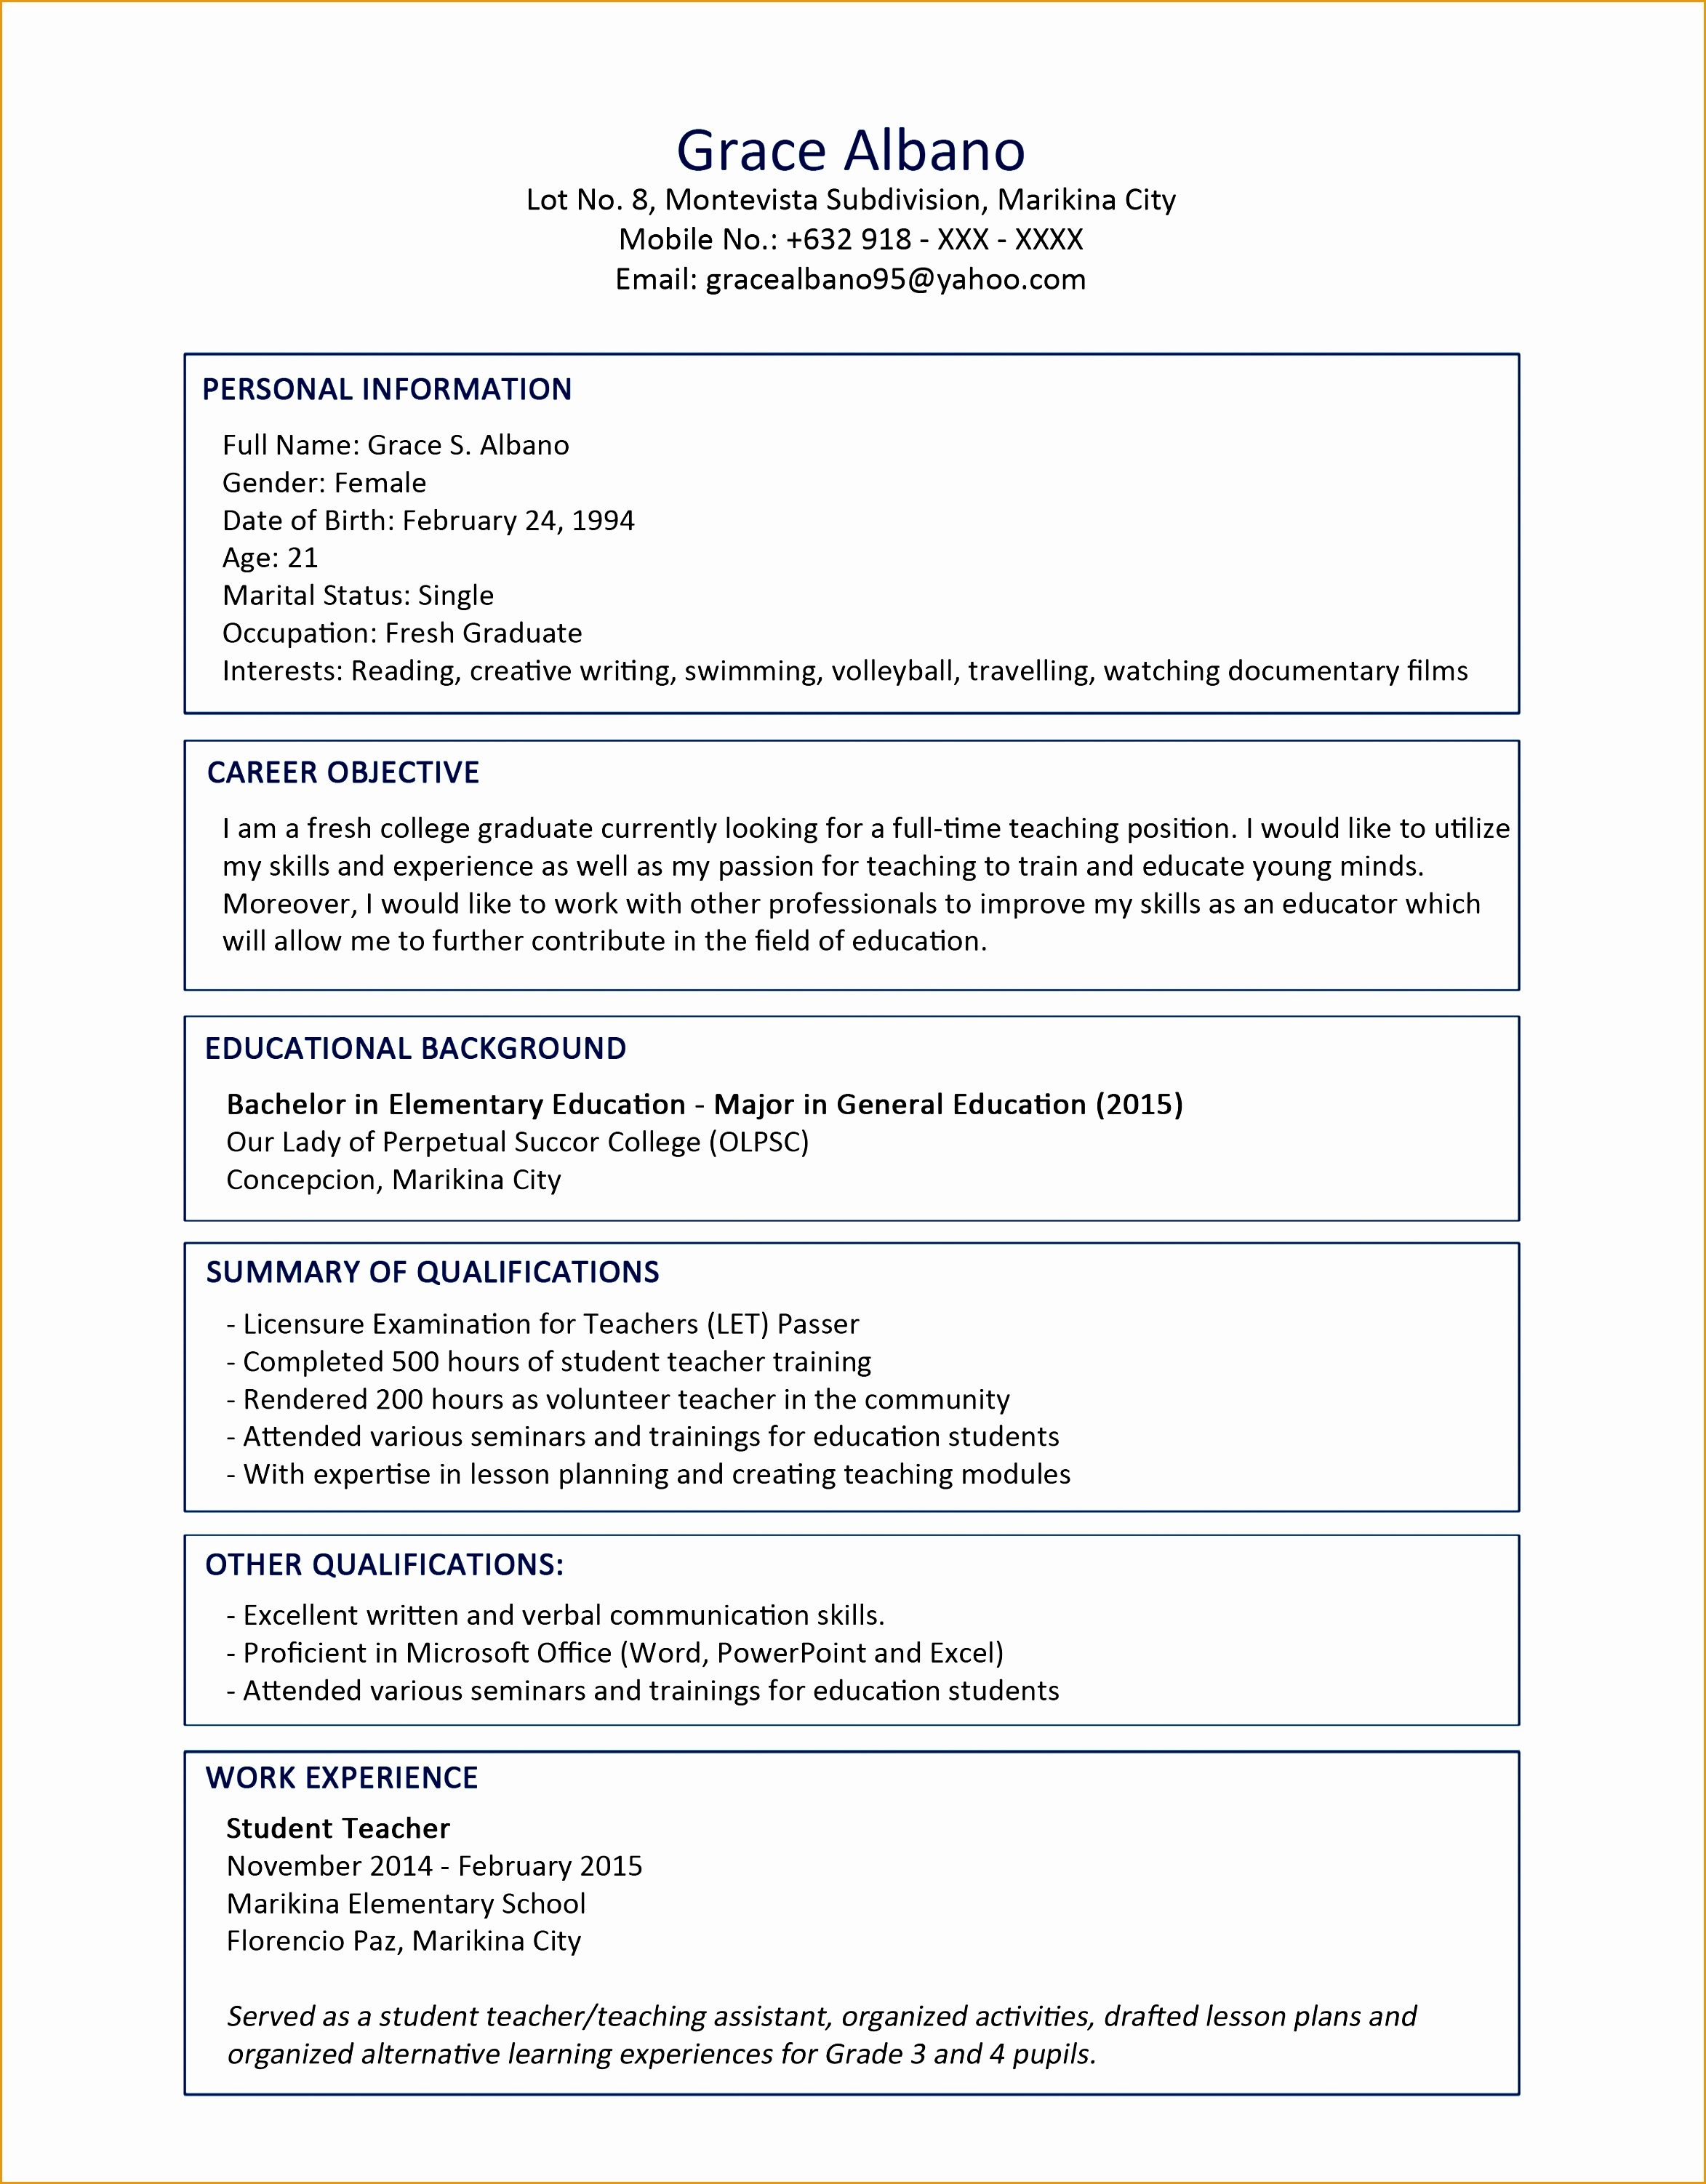 cv resume sample for fresh graduate of office administration 1 638 cb=